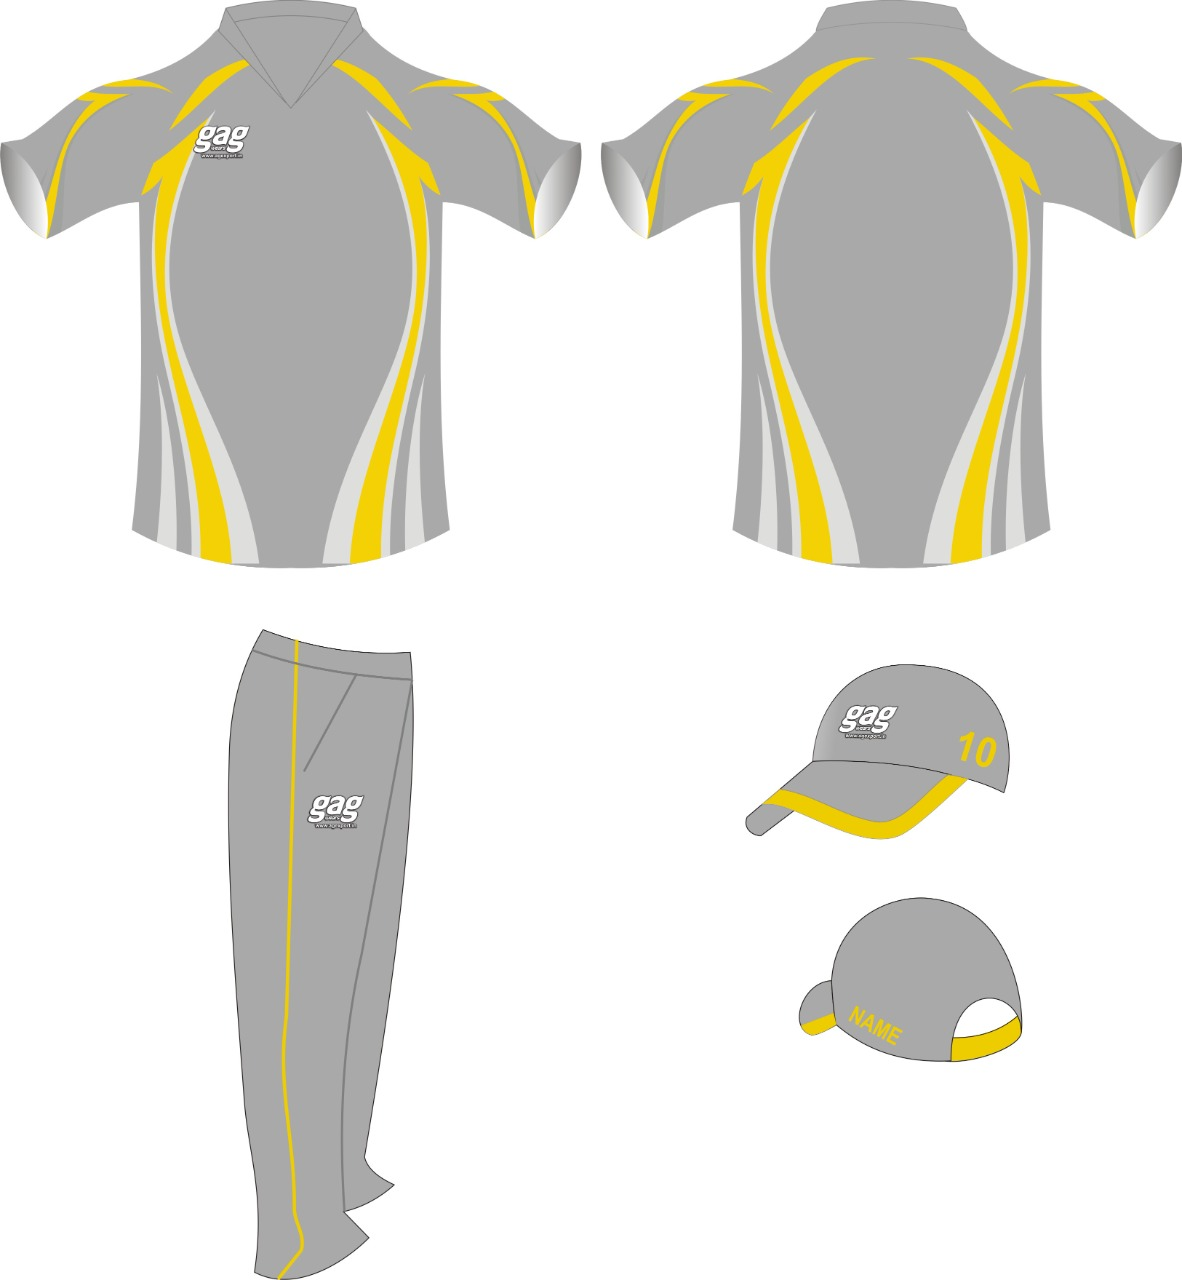 Cricket Tshirt Manufacturers in Jalandhar in Bangladesh